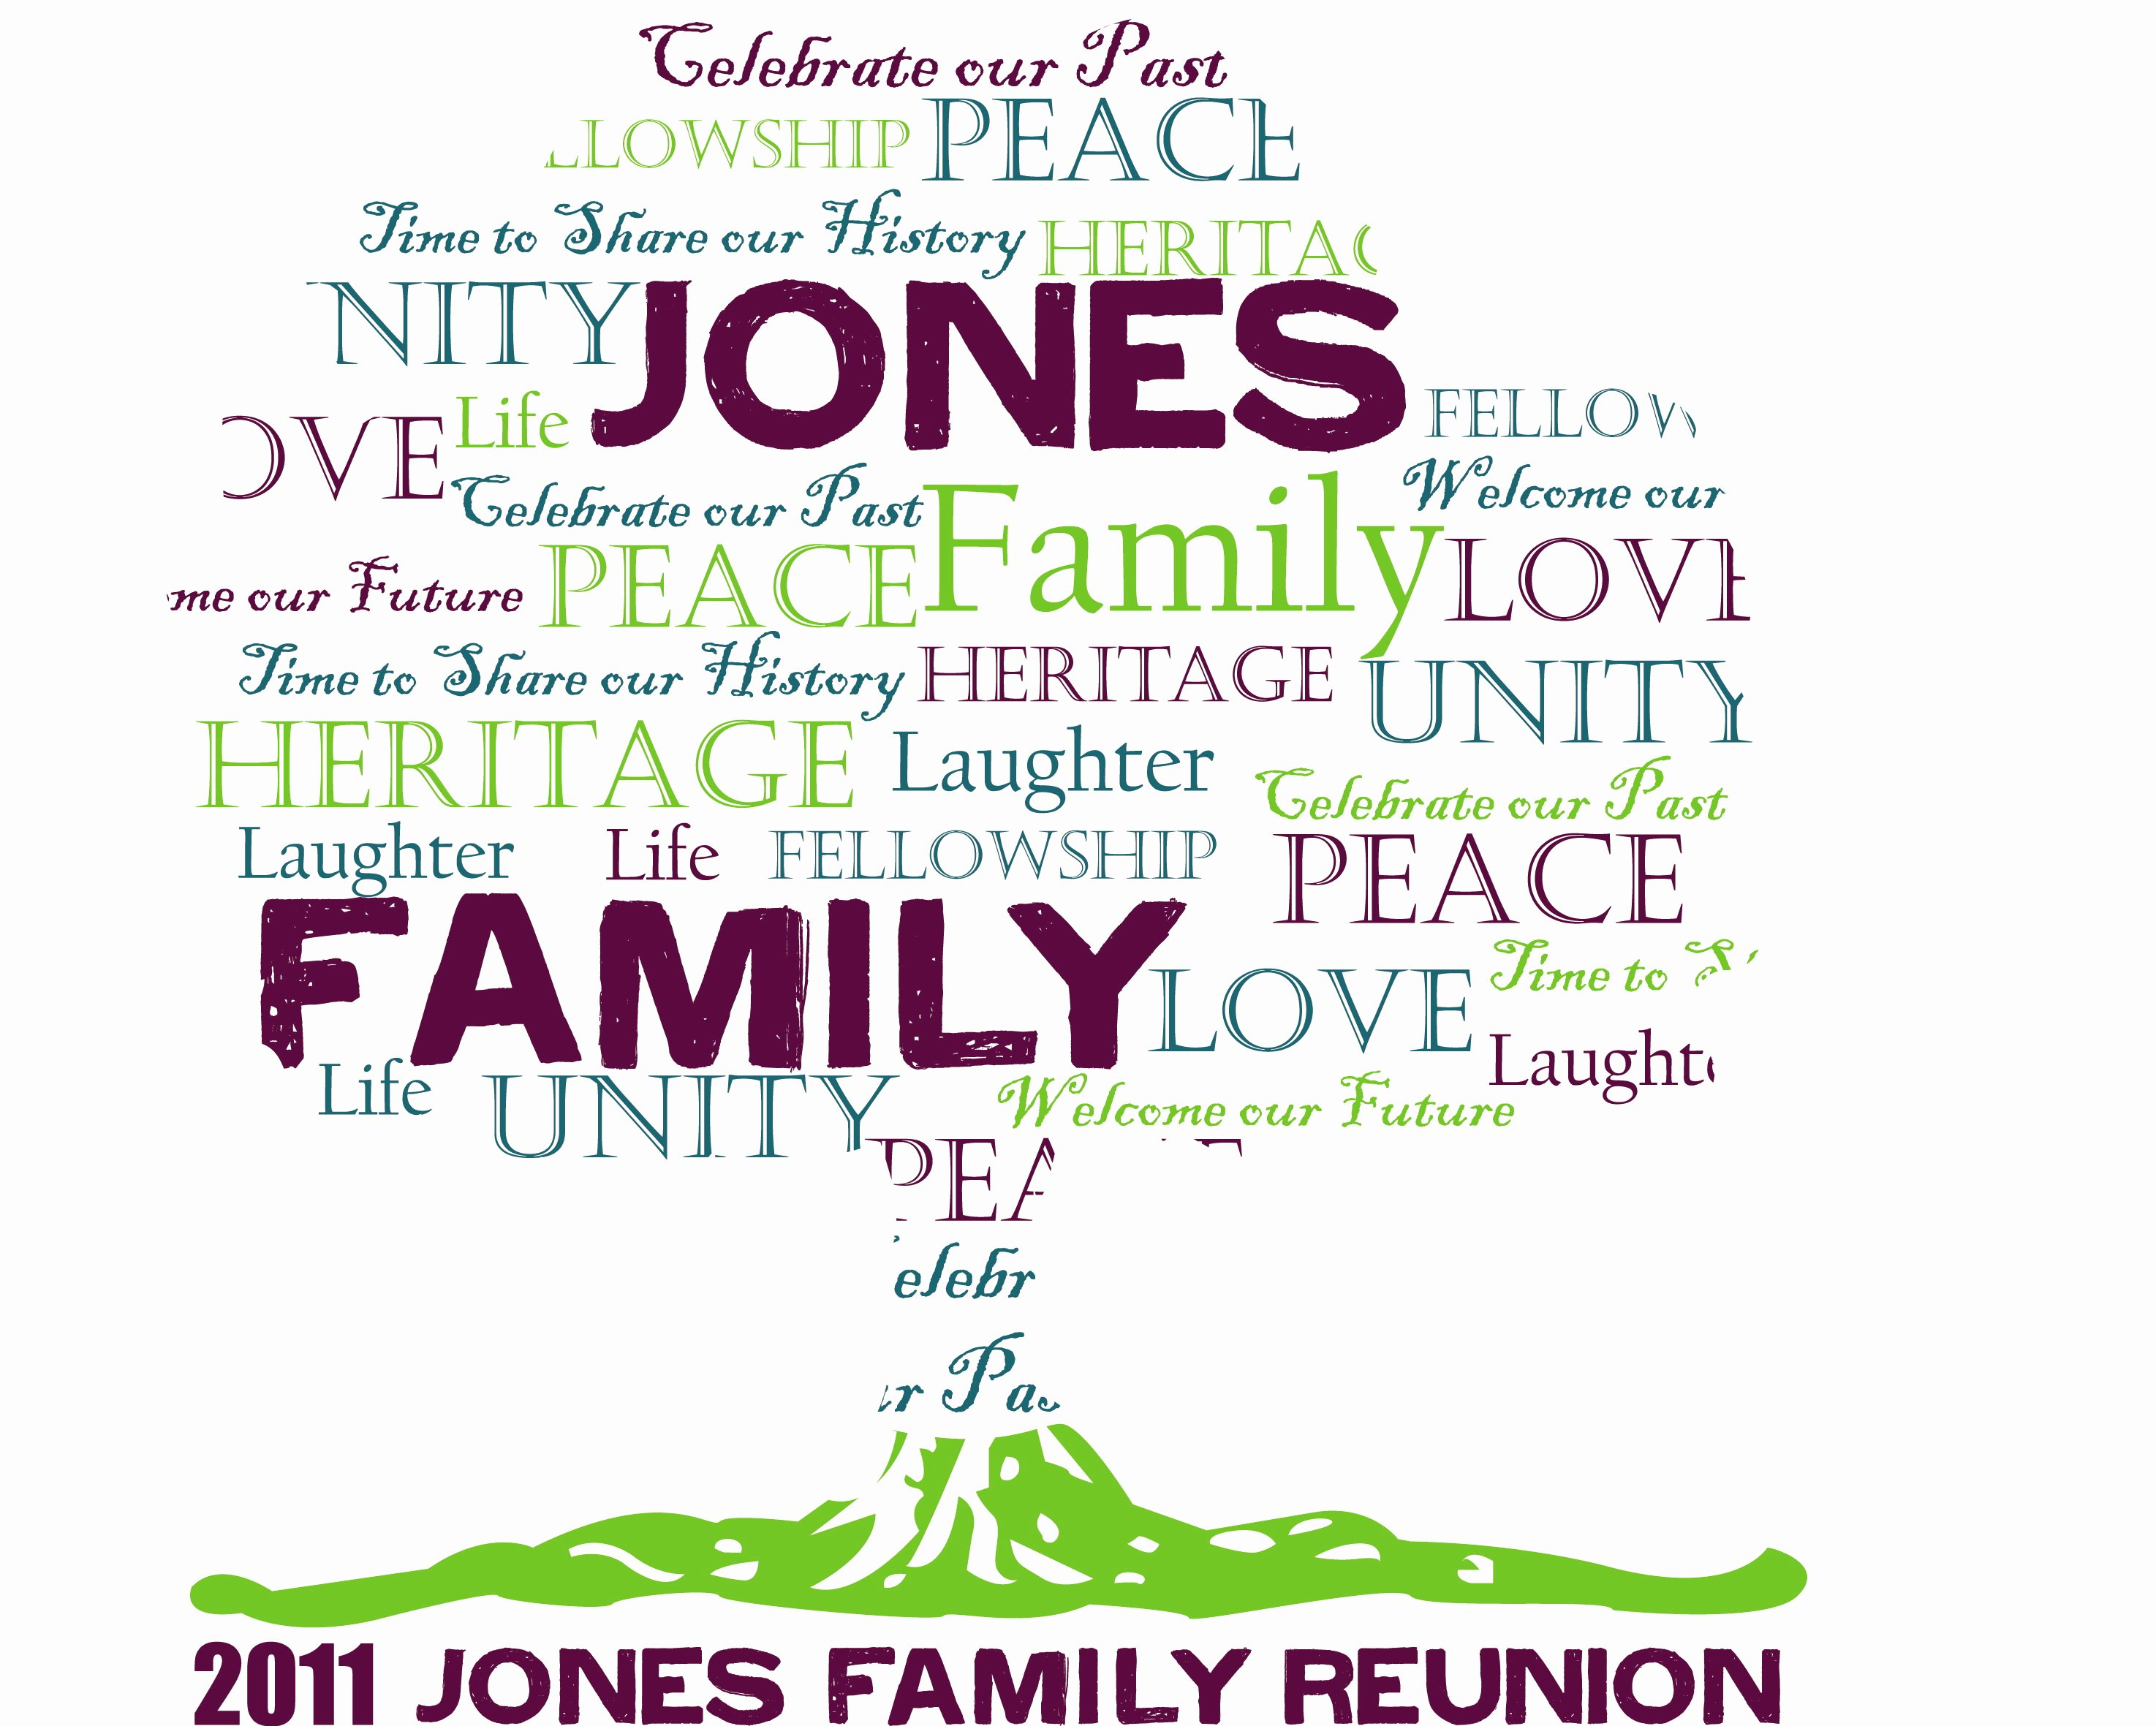 Family Reunion Newsletter Template Best Of Promotional Work by Natashia Privette at Coroflot